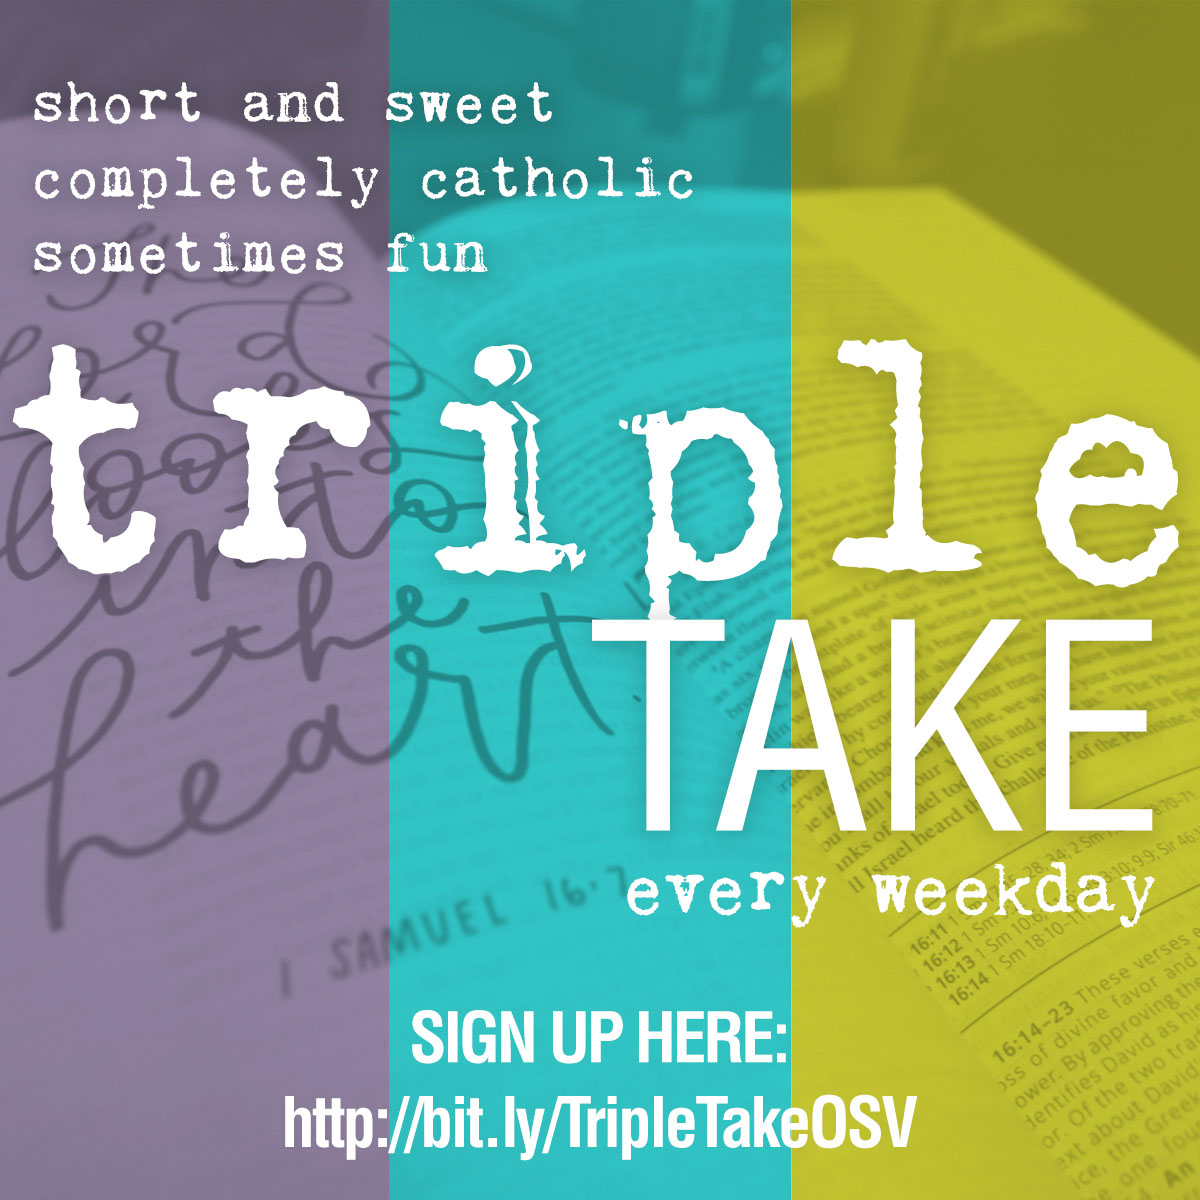 Join me for my weekday Triple Take at Our Sunday Visitor